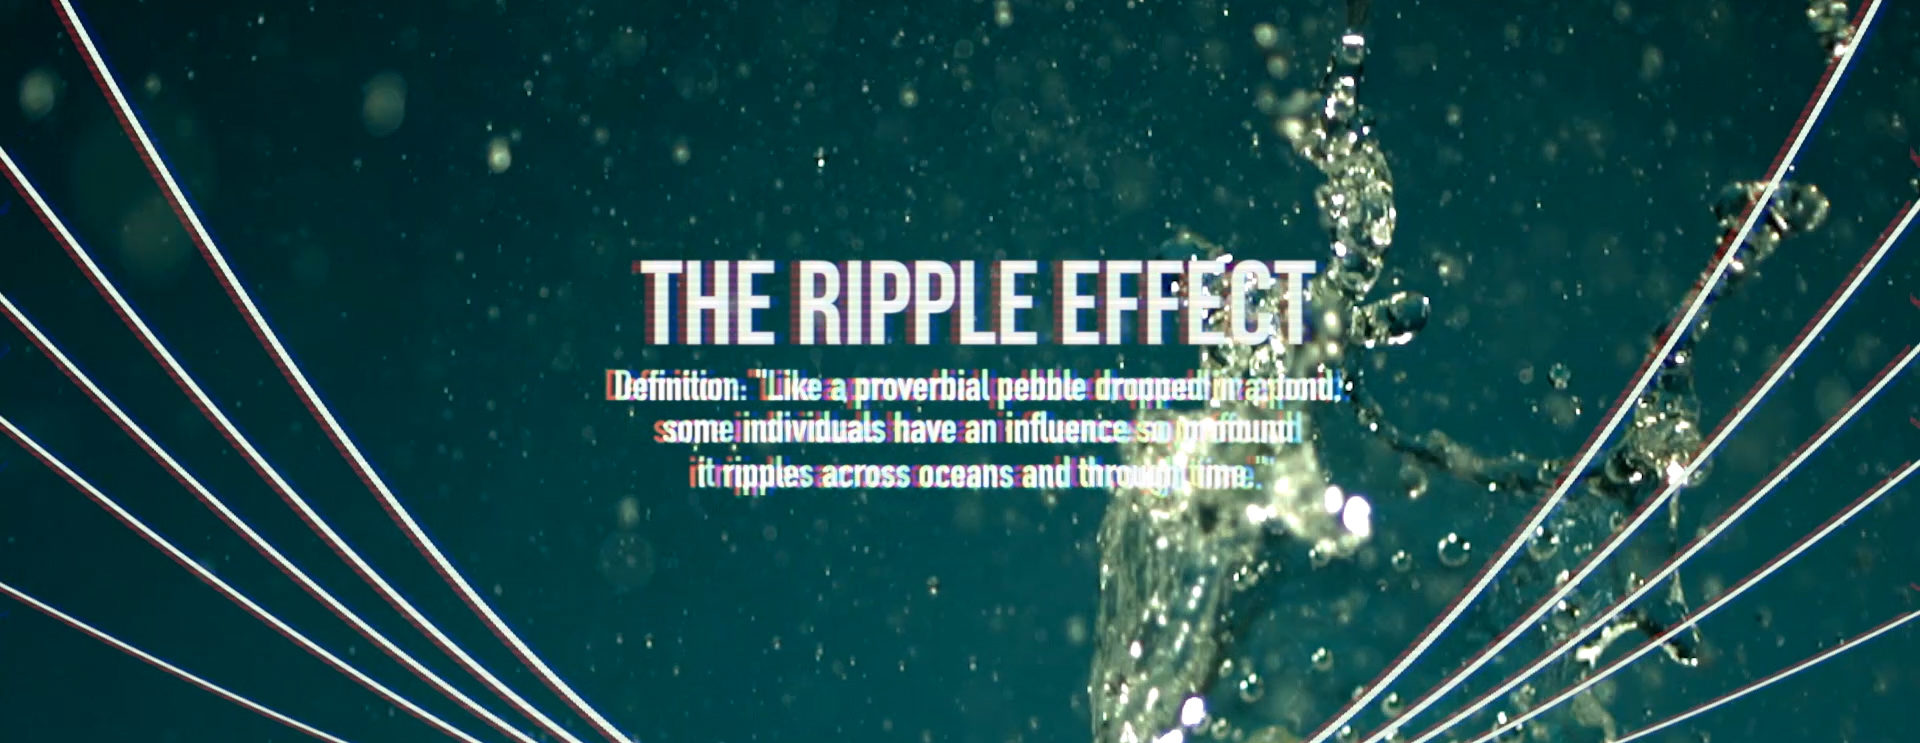 Red Bull - THE RIPPLE EFFECT Juxtapoz_Excerpt.mp4.00_00_10_23.Still001